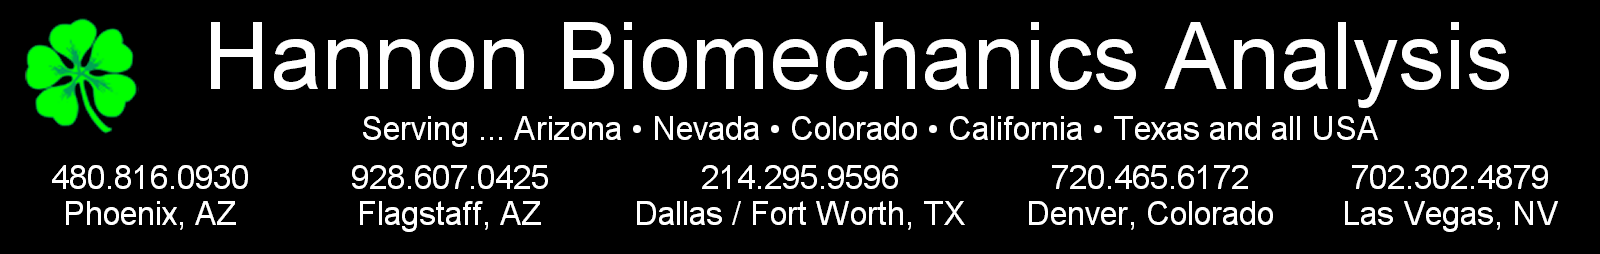 Hannon Biomechanics Analysis Phoenix, Flagstaff, Arizona, Dallas, Fort Worth, Texas